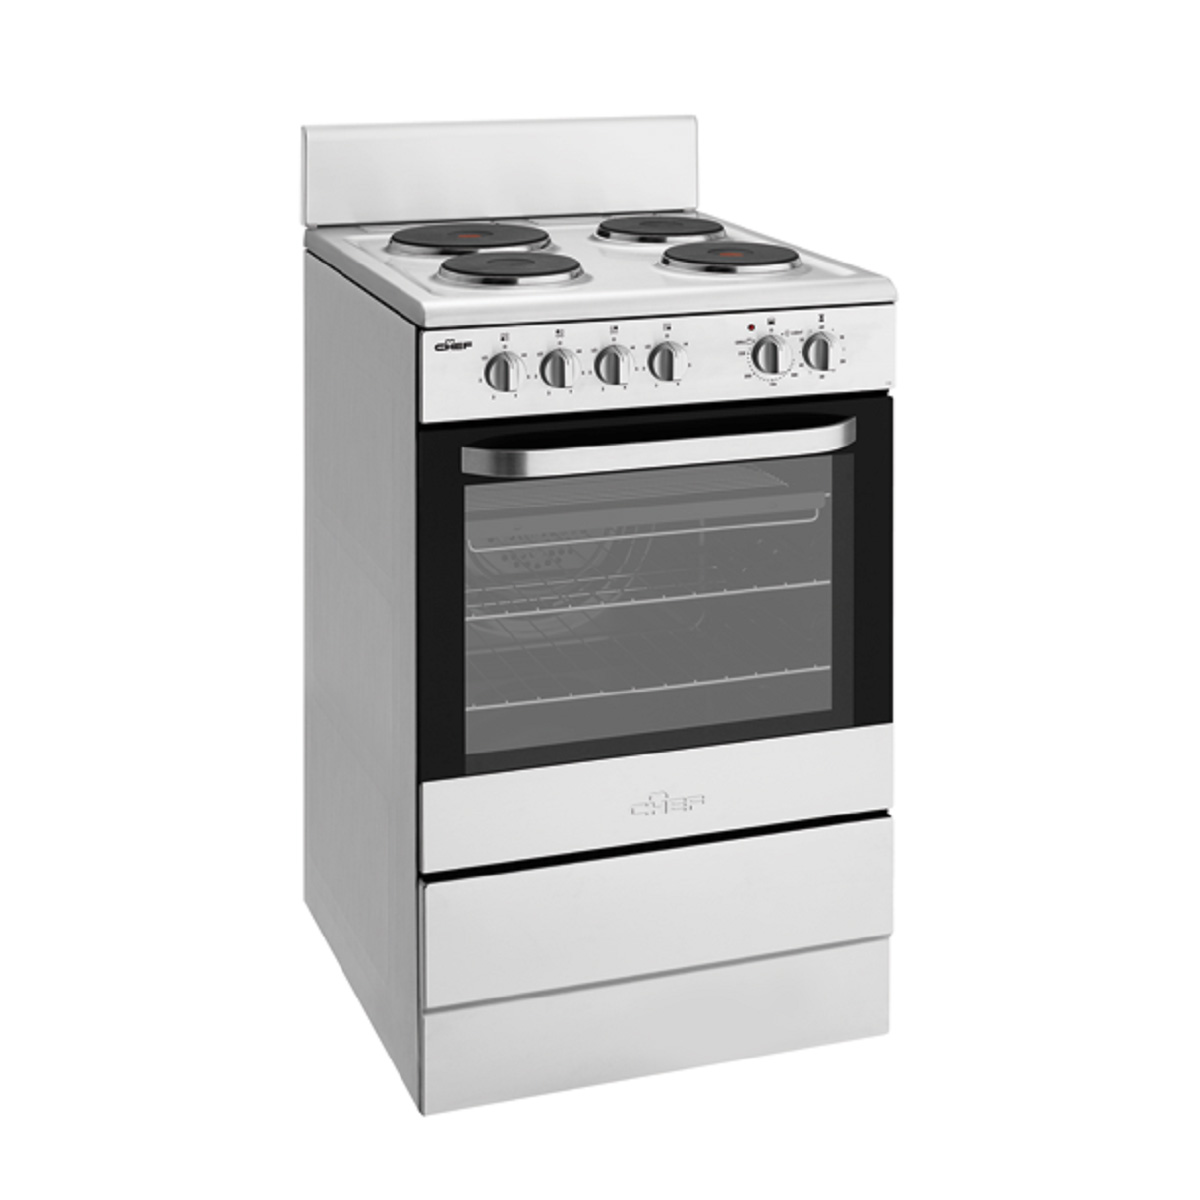 Chef Electric Stove CFE536SA